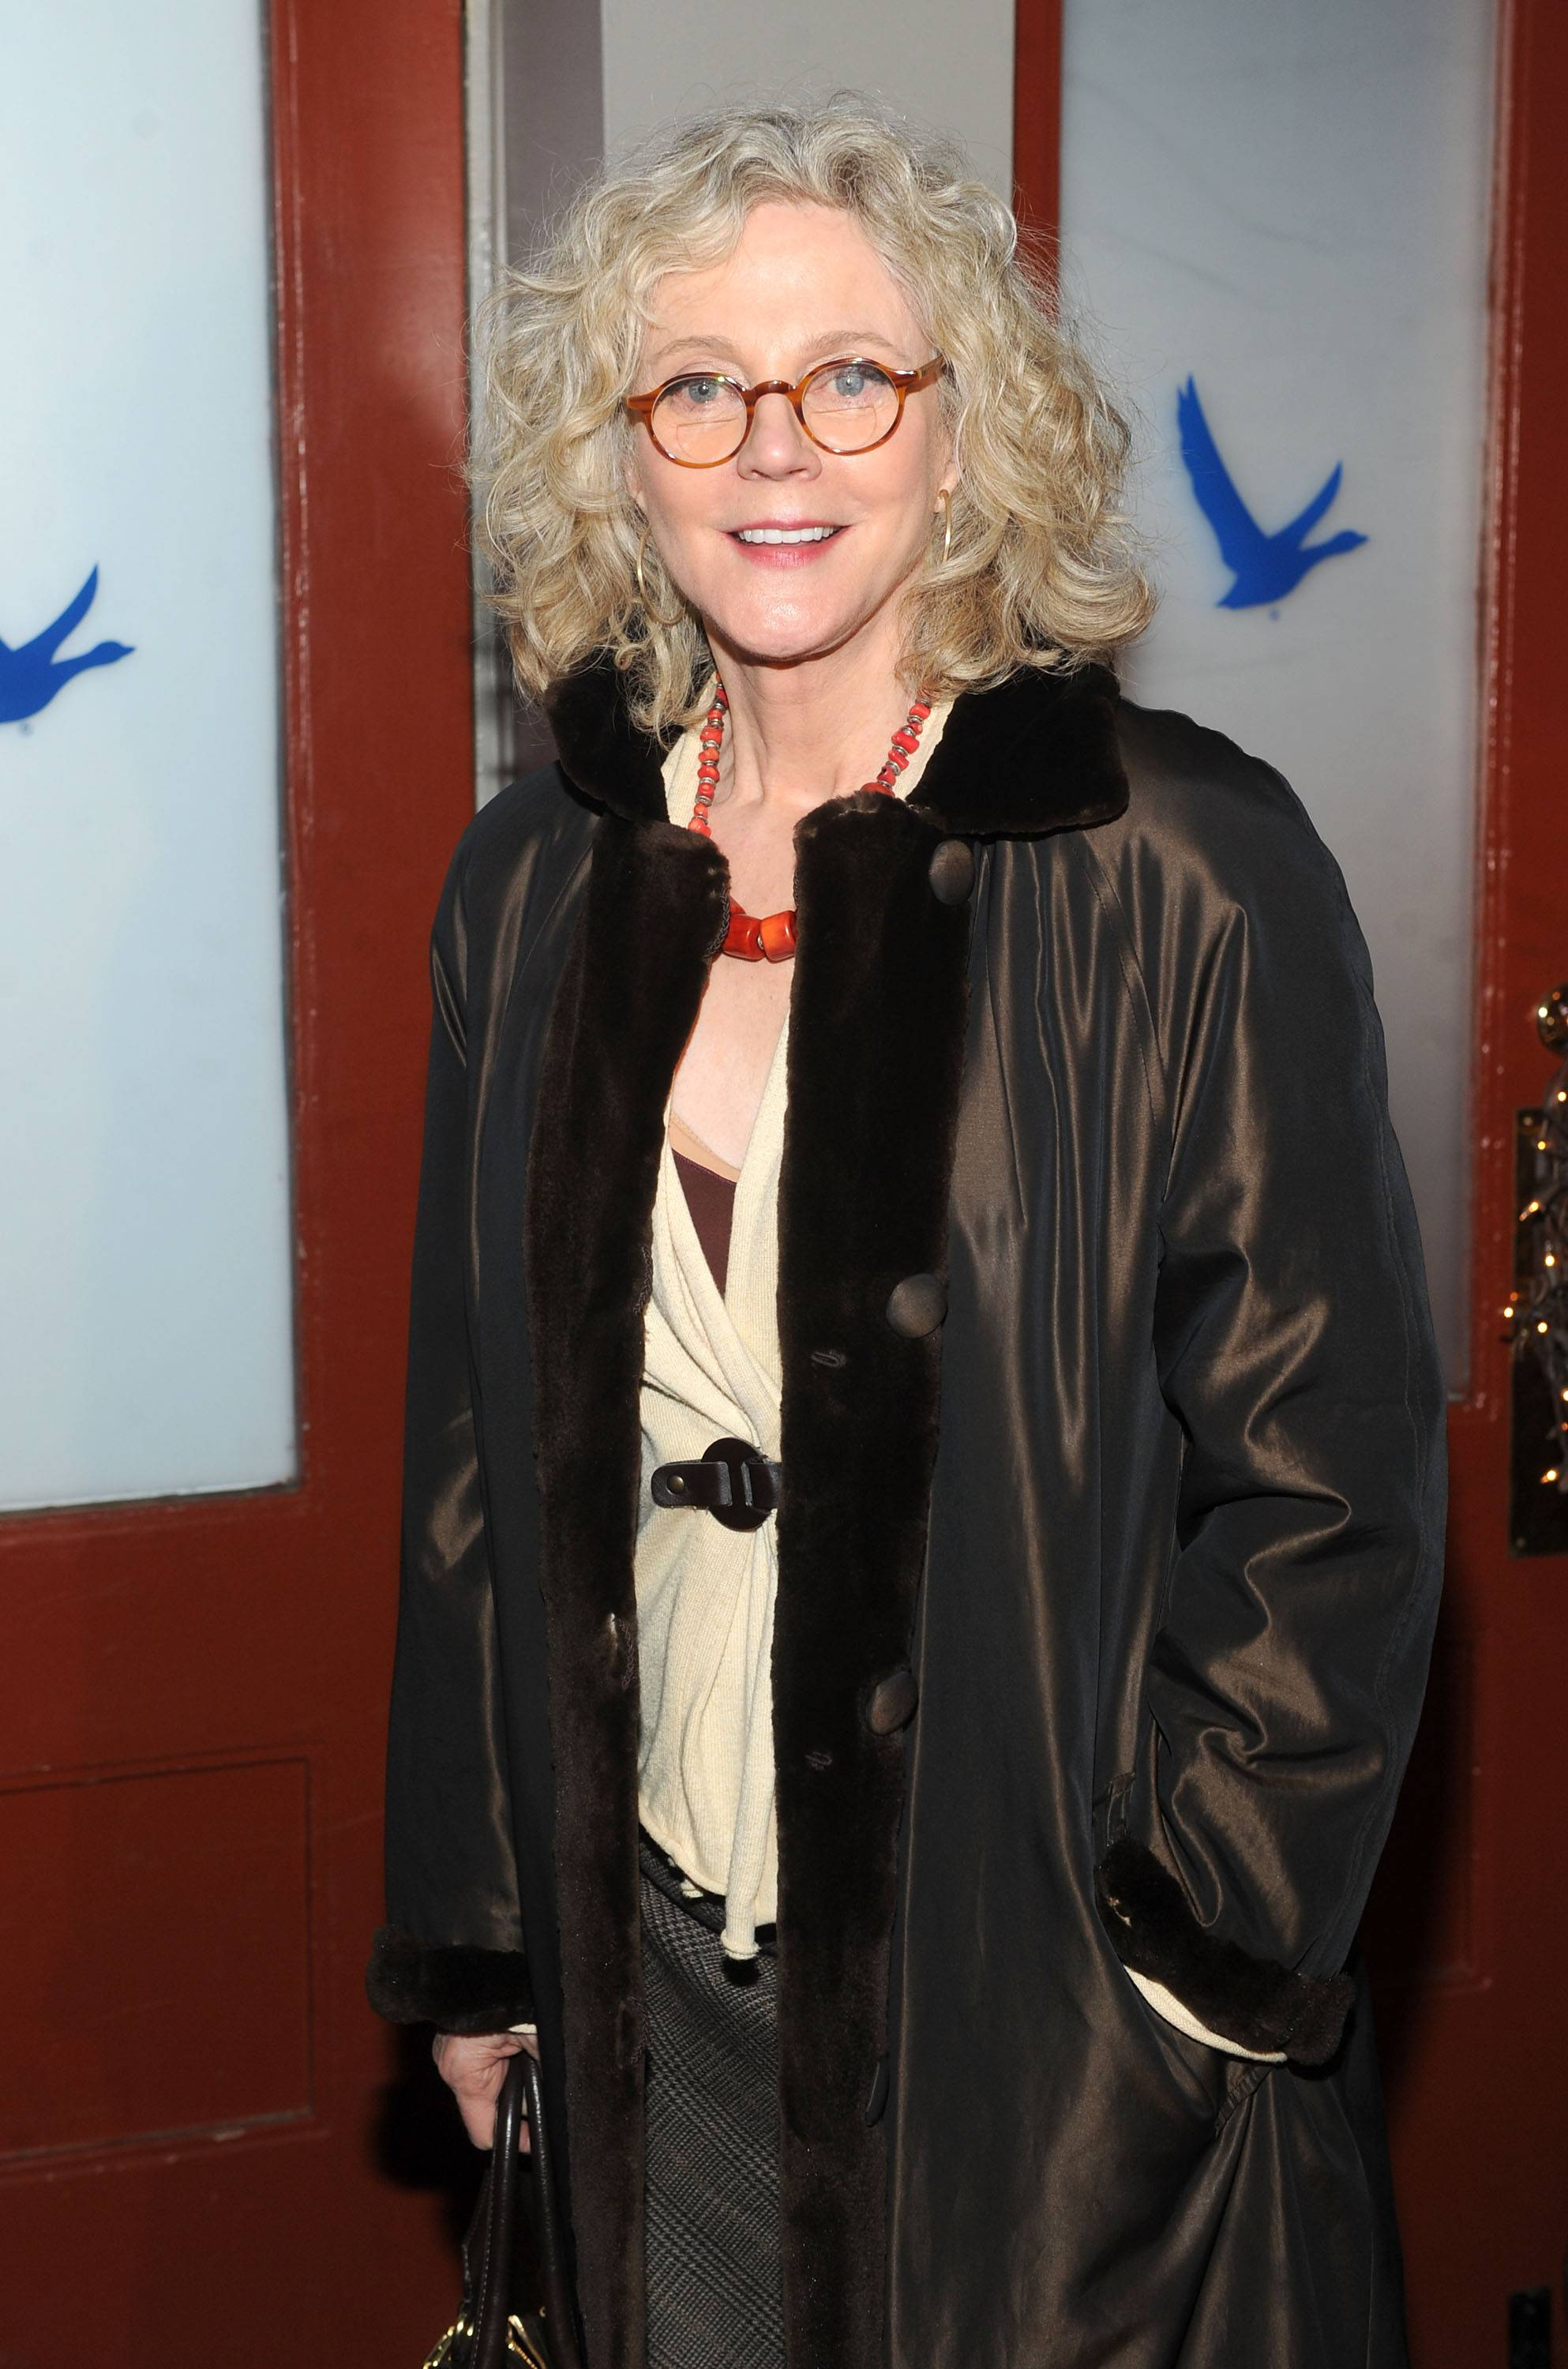 Blythe Danner 2 at the GREY GOOSE Blue Door at Sundance on Friday 1-20-12